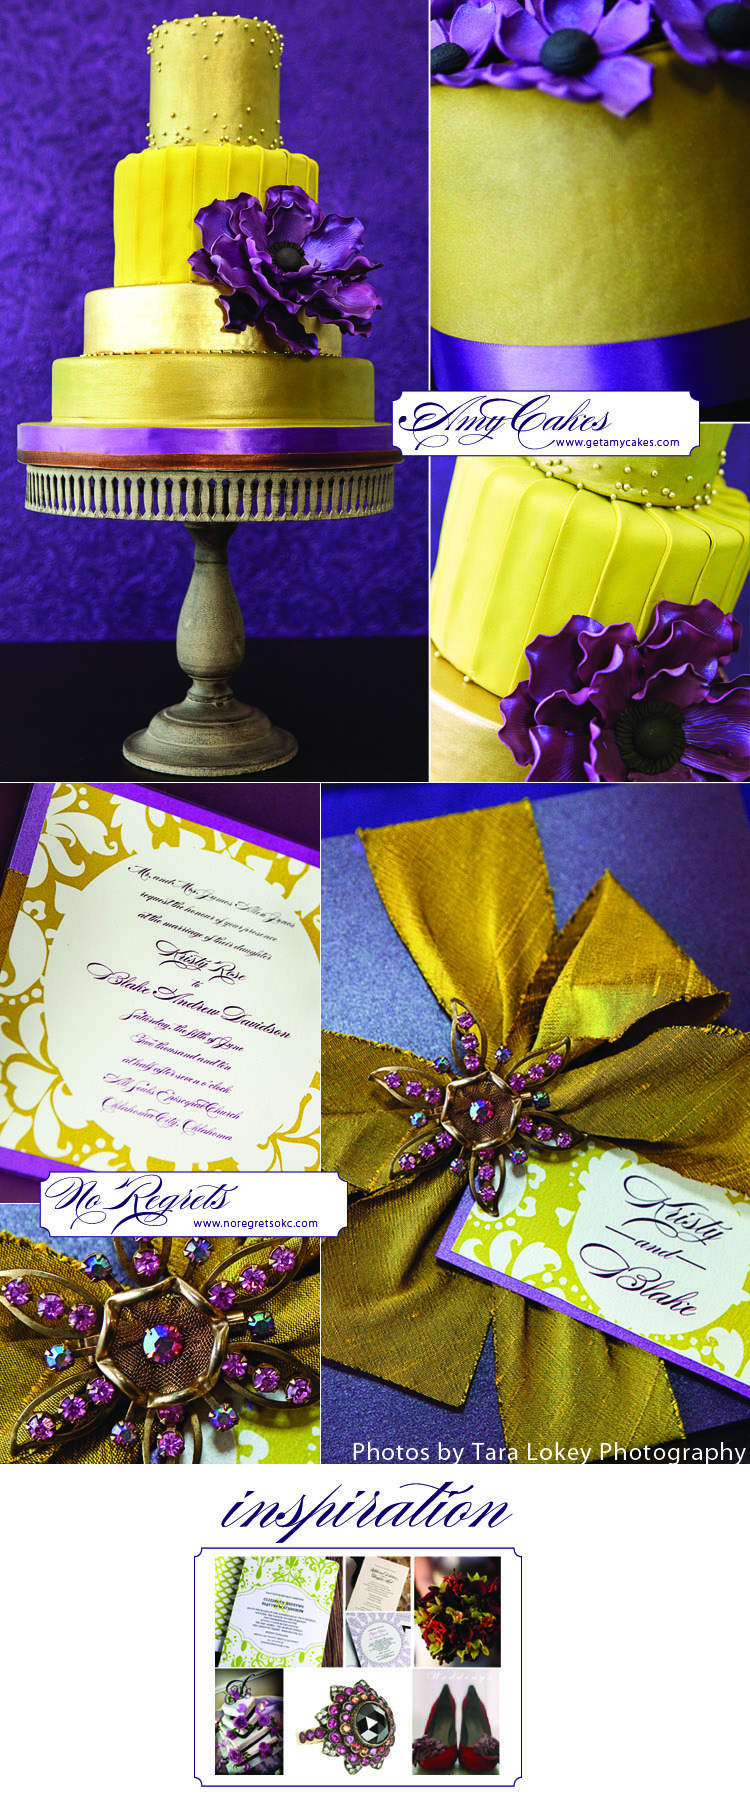 Amy Cakes in Norman, Oklahoma, and No Regrets wedding invitations in Oklahoma City, Oklahoma